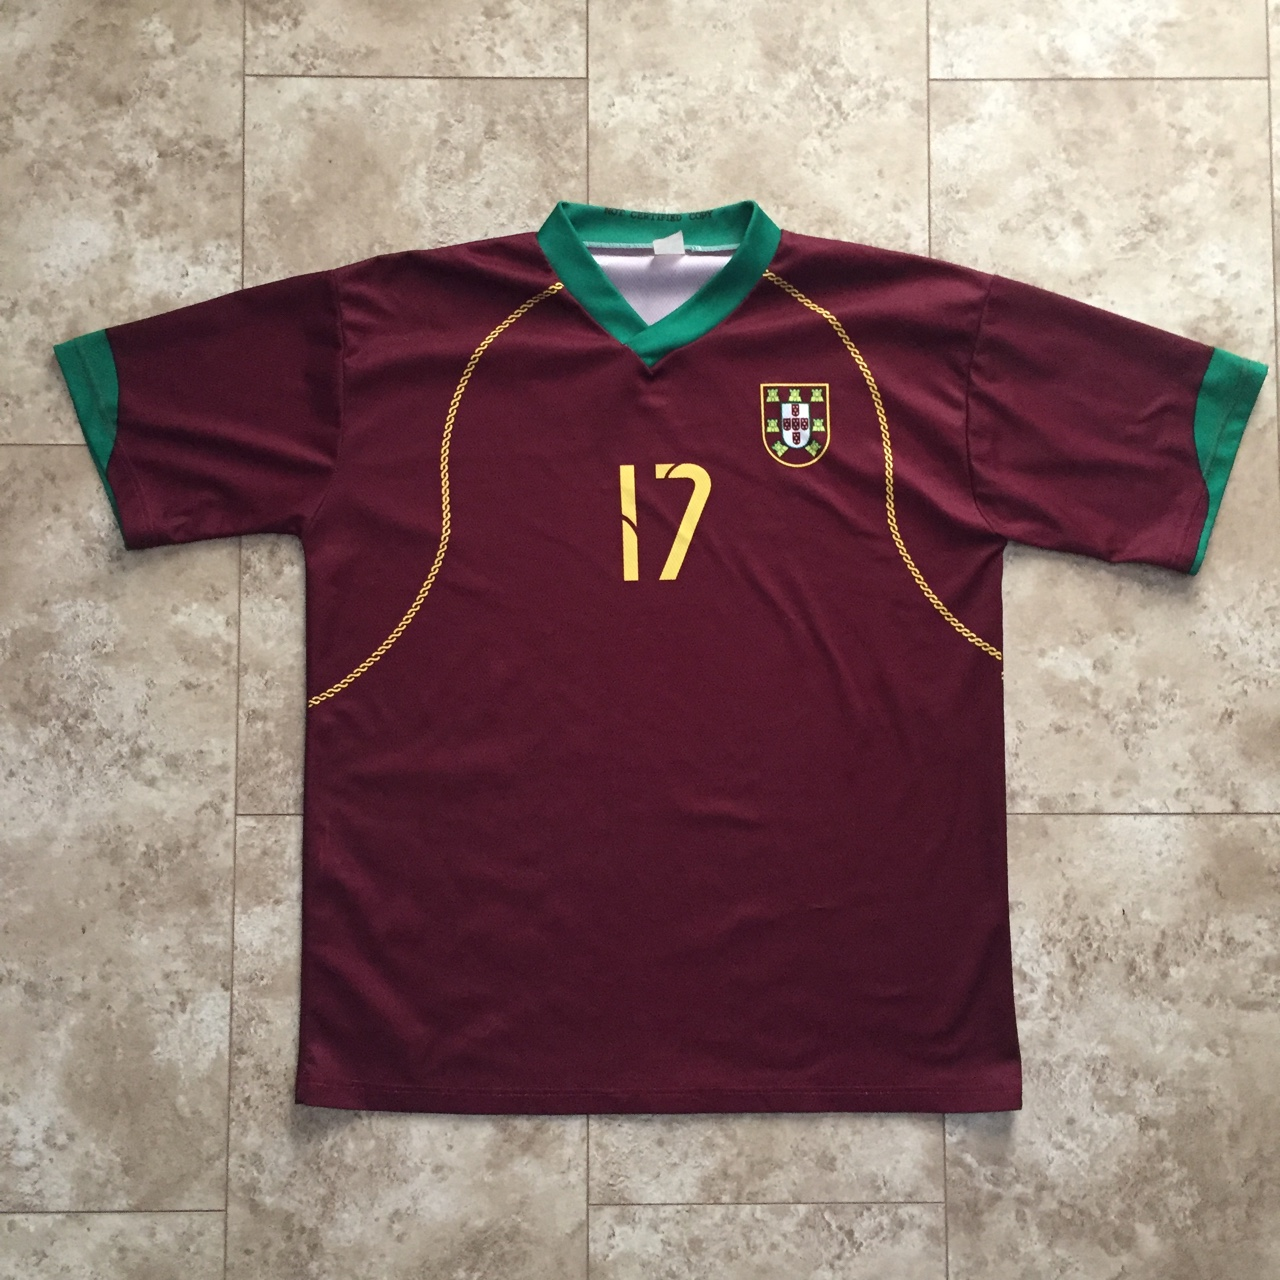 the best attitude 3587e 452e1 Cristiano Ronaldo Portugal National Team Jersey #17... - Depop